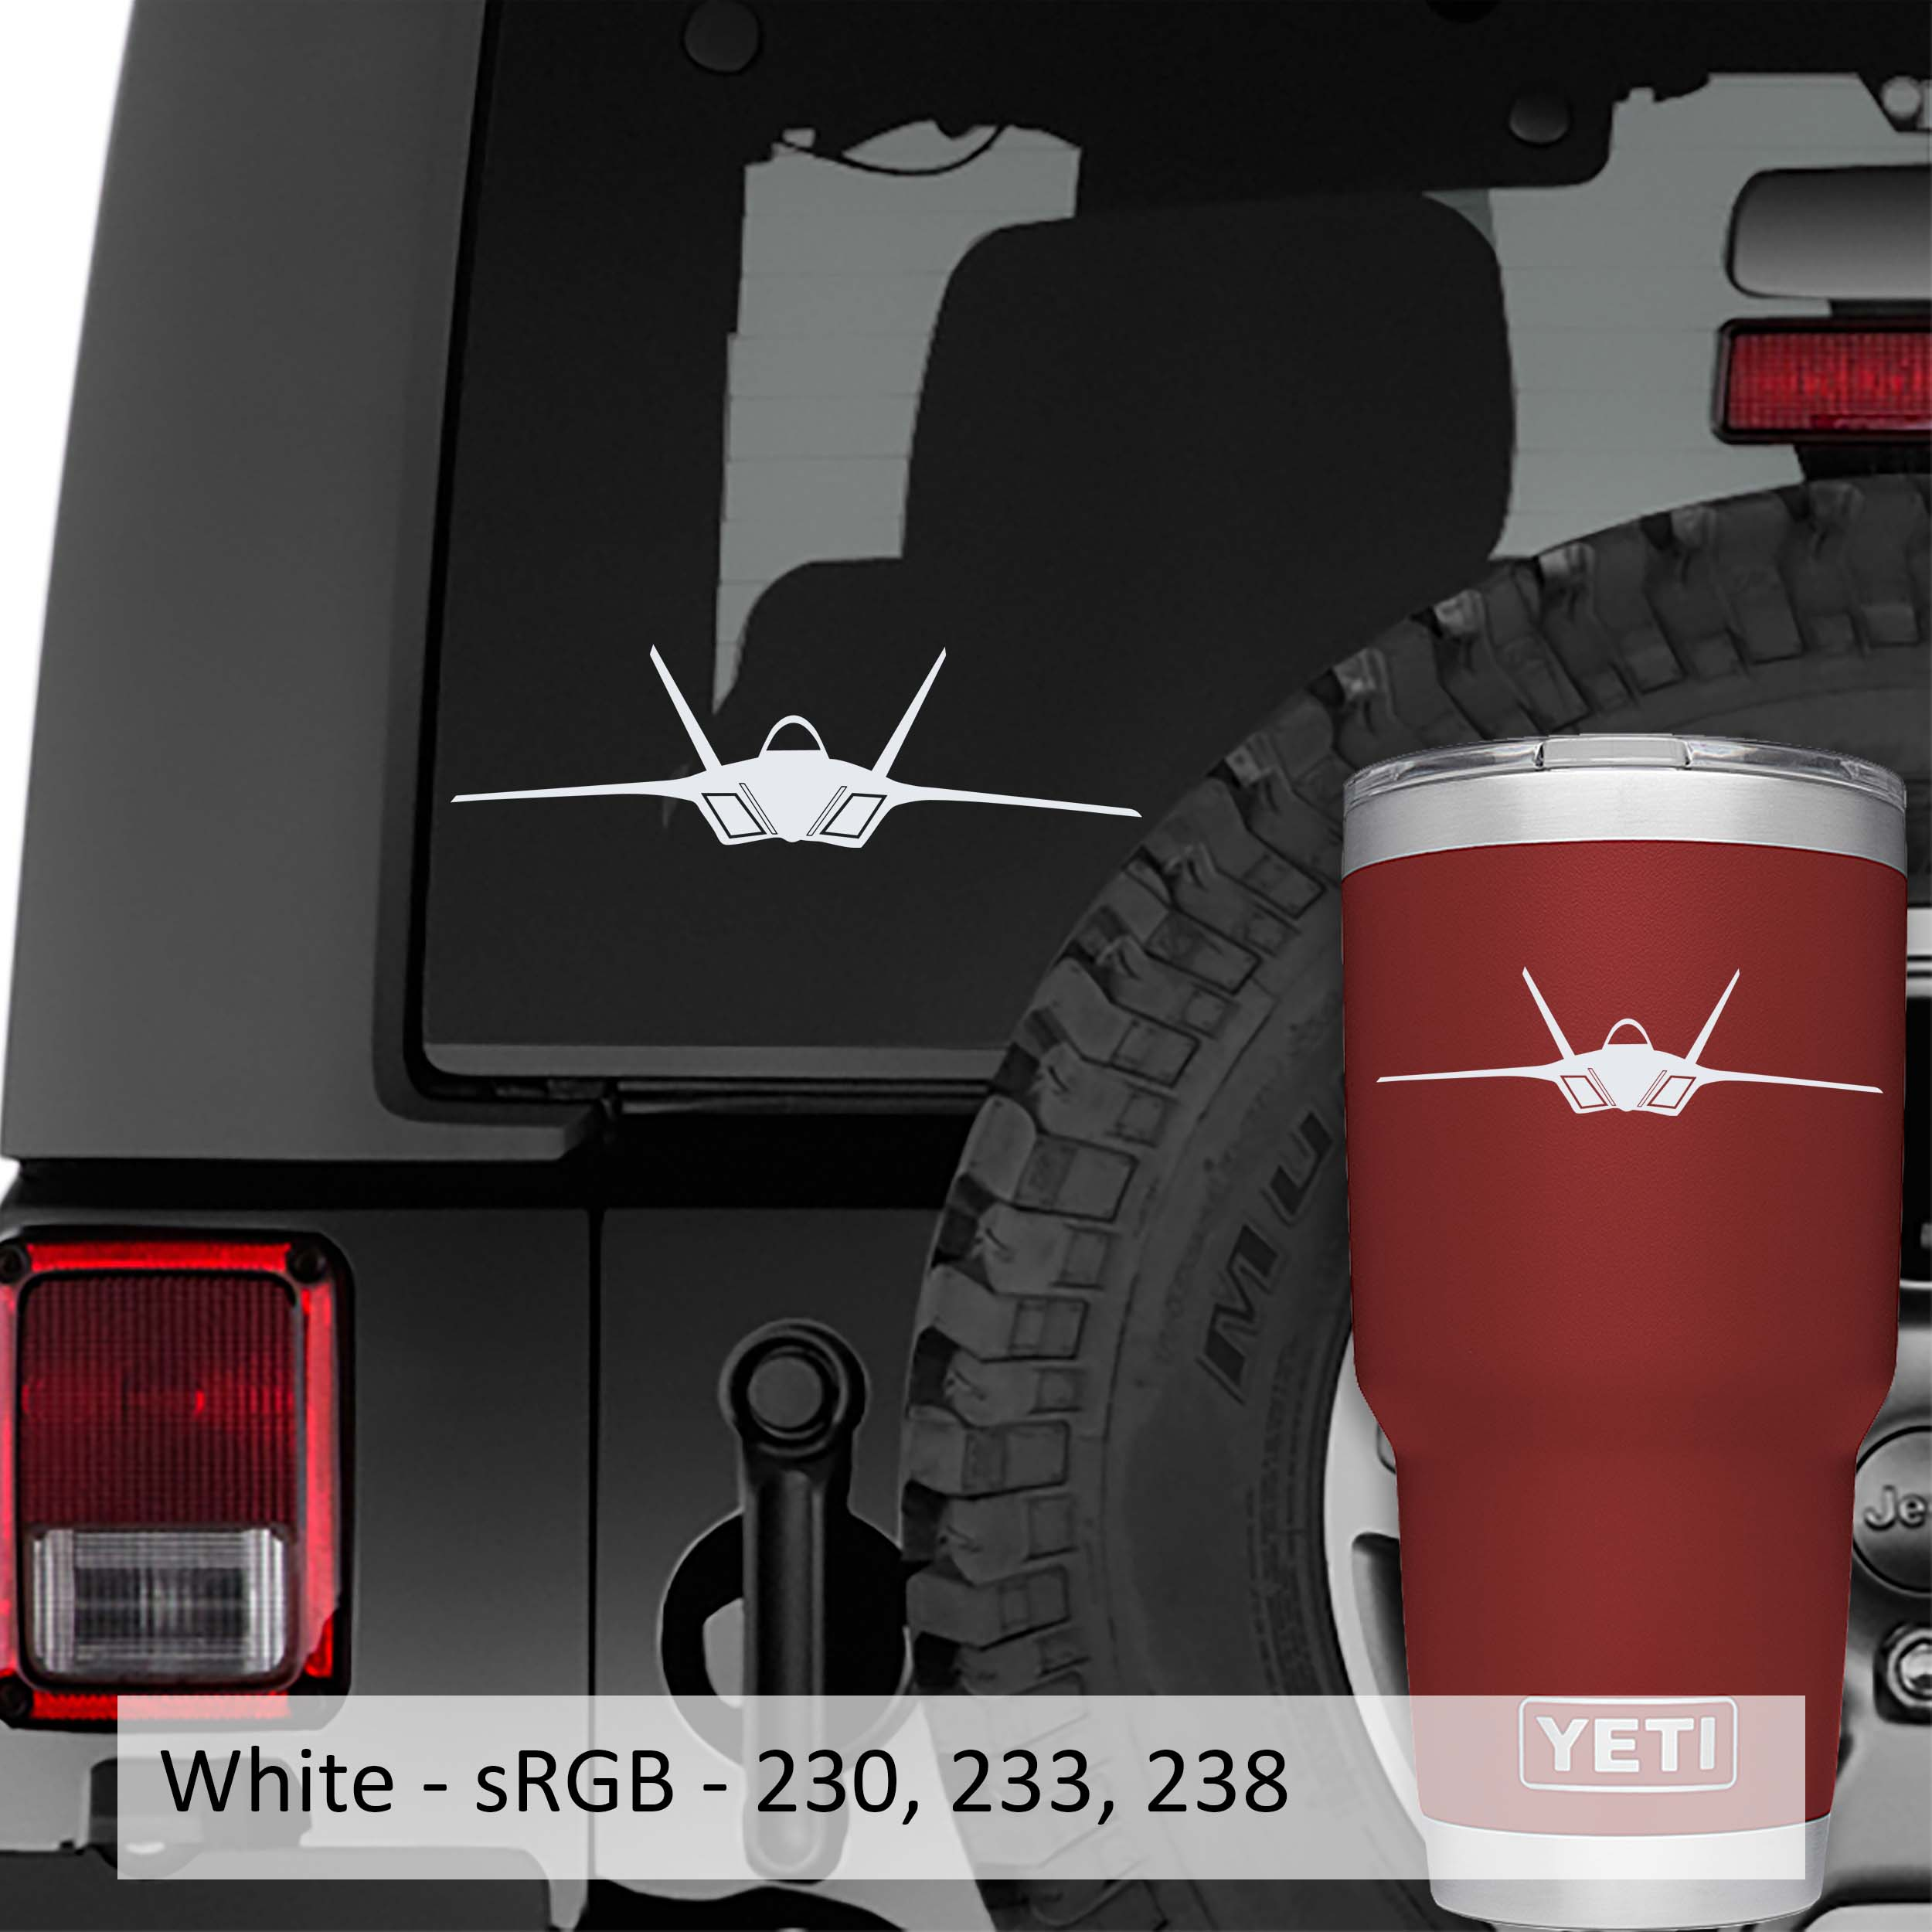 F22a Raptor Vinyl Decal | F22a Raptor Fighter Jet Tumbler Decal